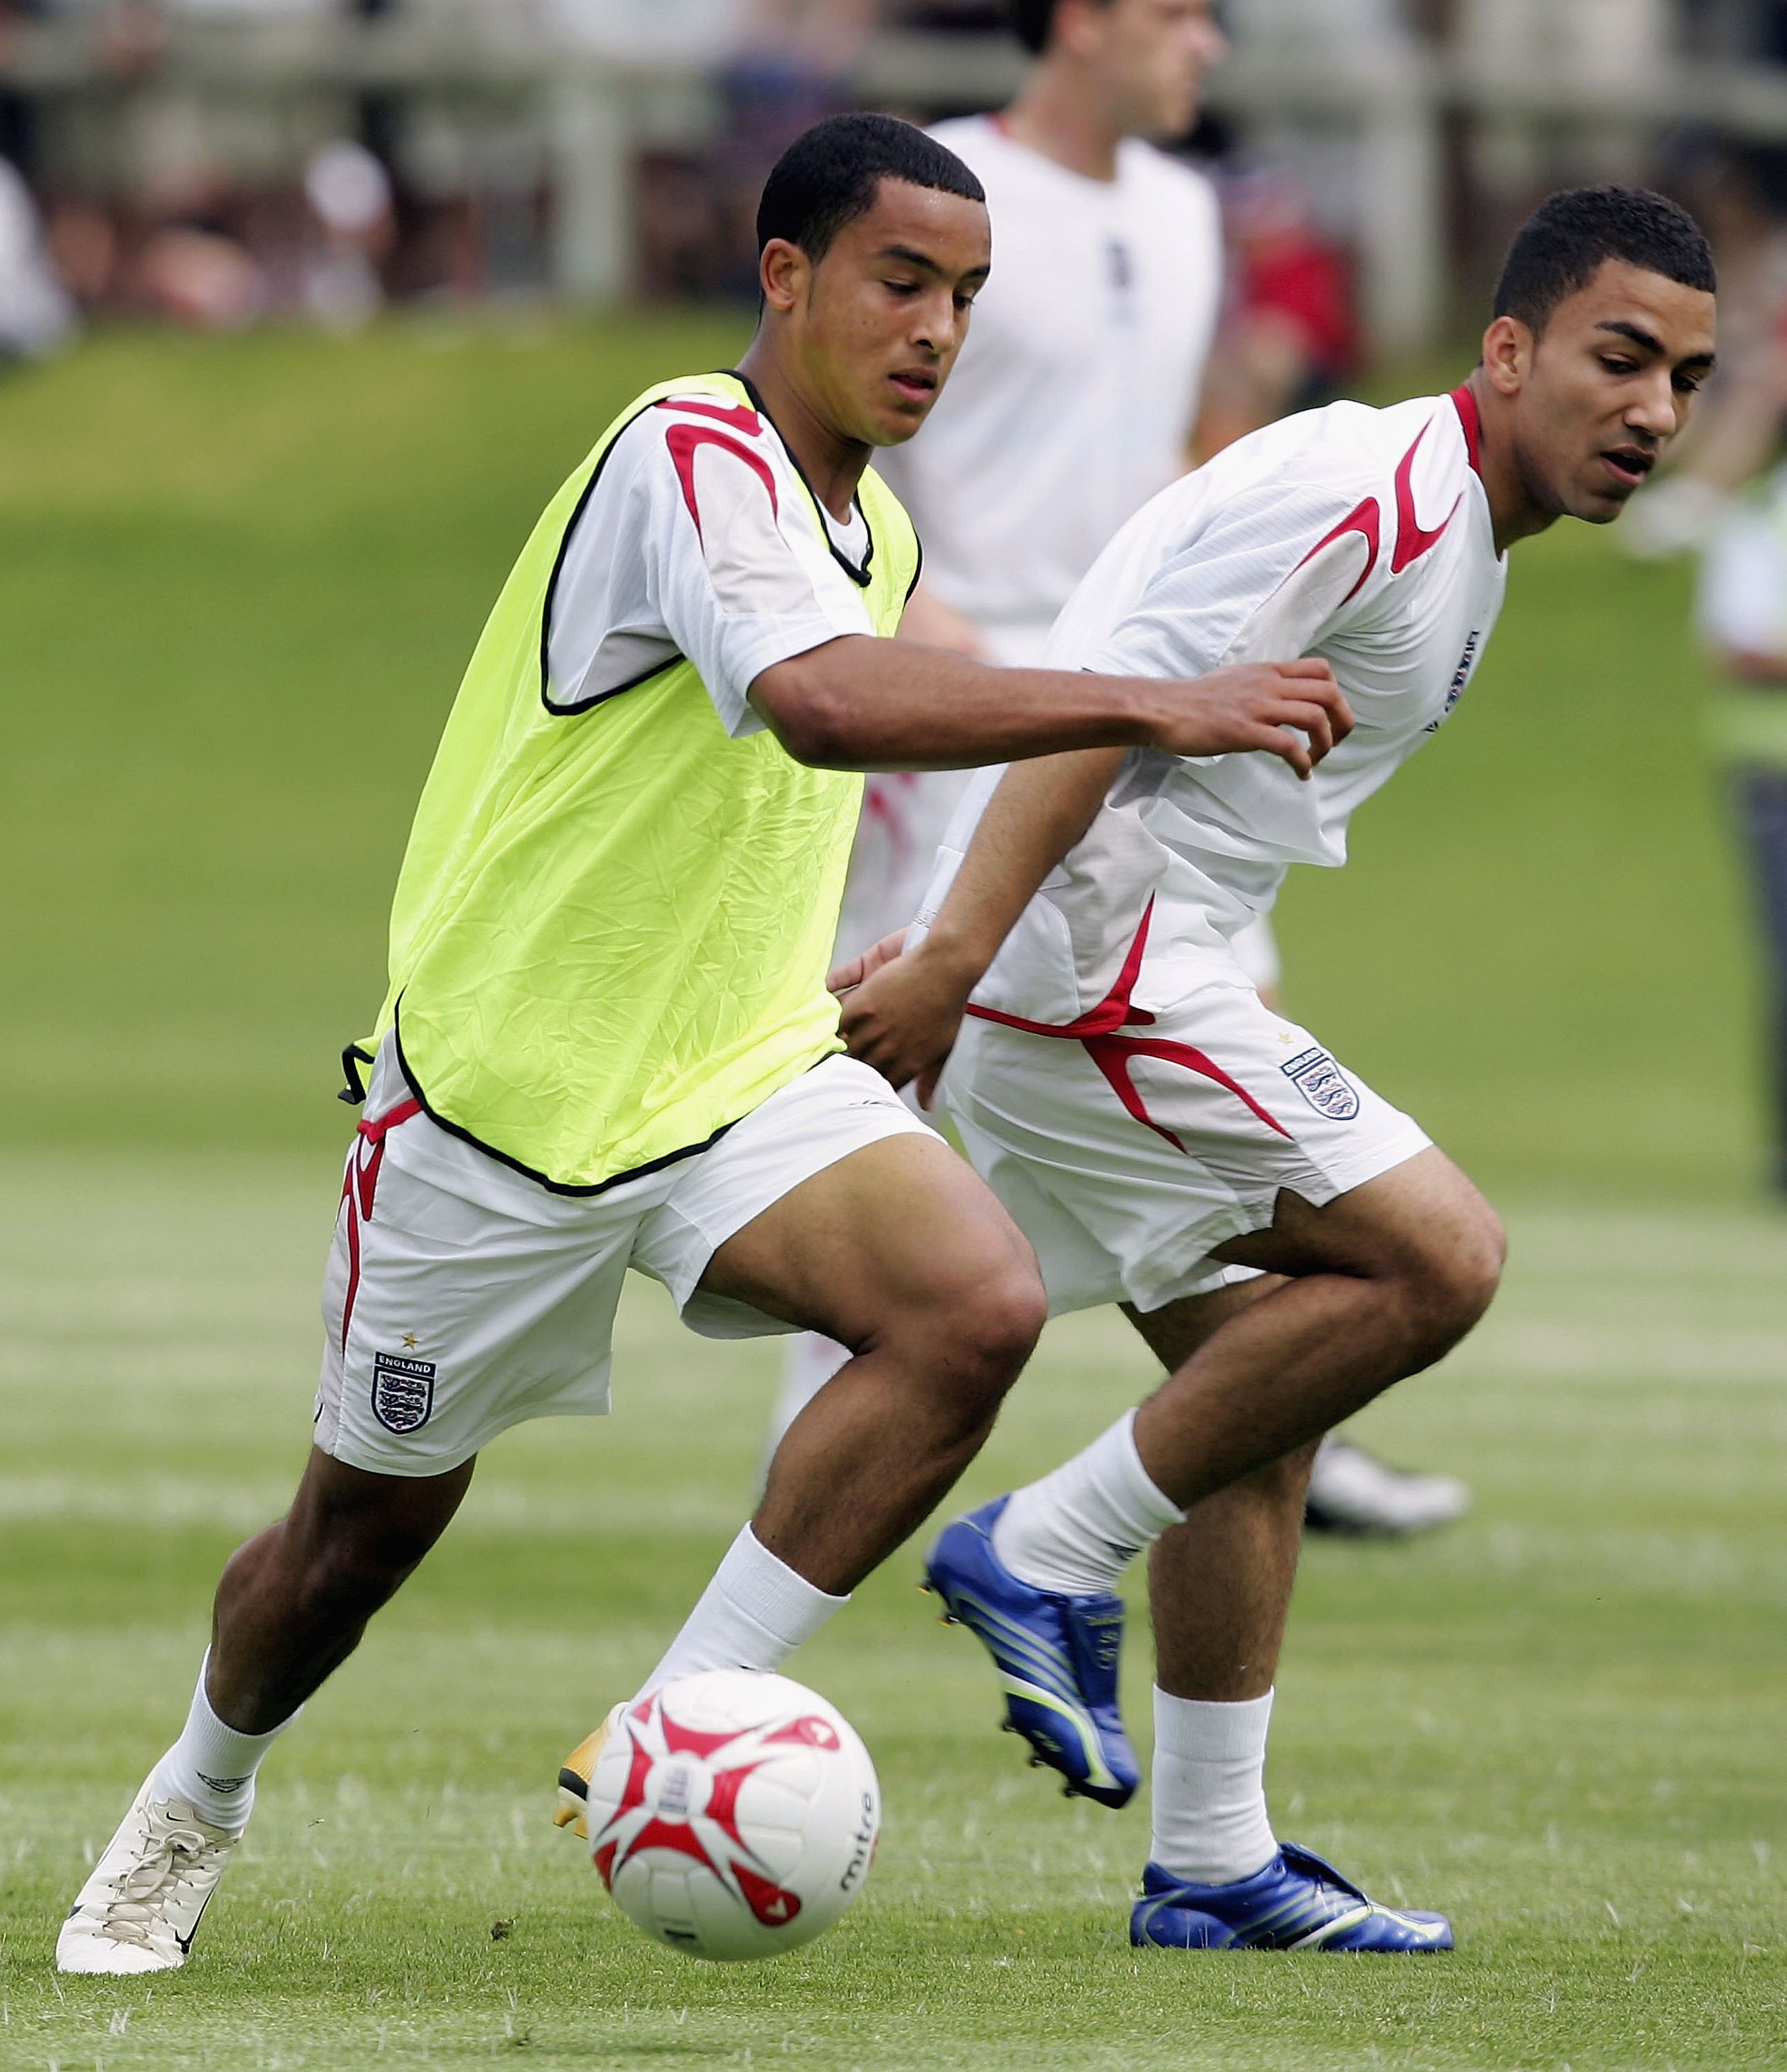 FARO, PORTUGAL - MAY 17:  Theo Walcott and Aaron Lennon of England in action during the squads pre World Cup training camp at Vale do Lobo on May 17, 2006 in Faro, Portugal.  (Photo by Ross Kinnaird/Getty Images)